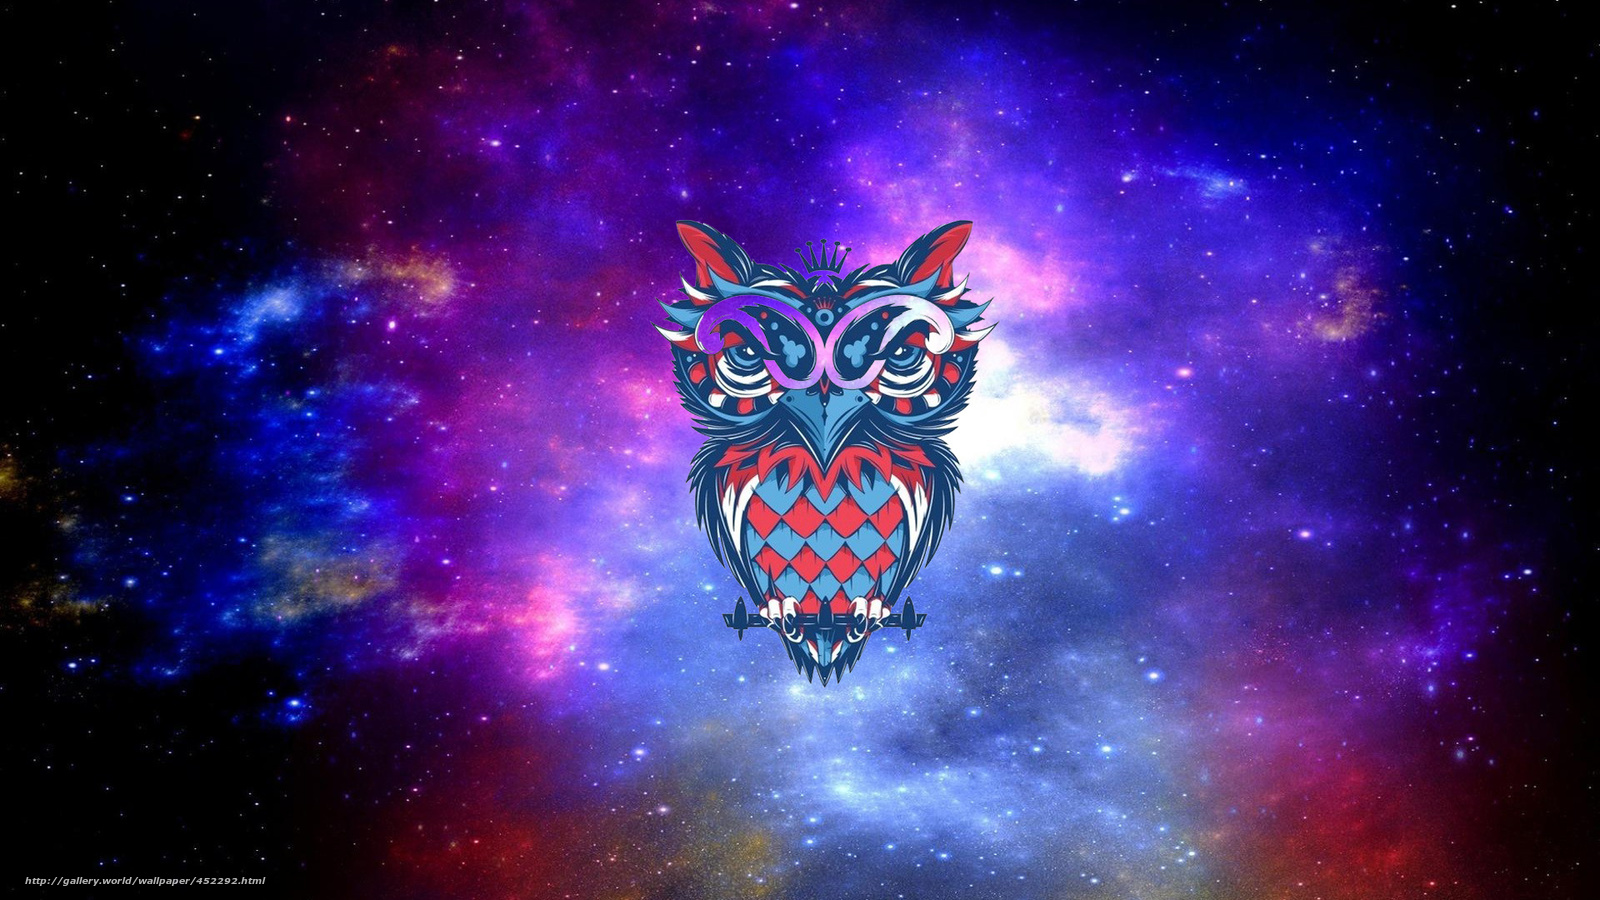 Download Wallpaper Space Owl Art Free Desktop In The Resolution 1920x1080 Picture No452292